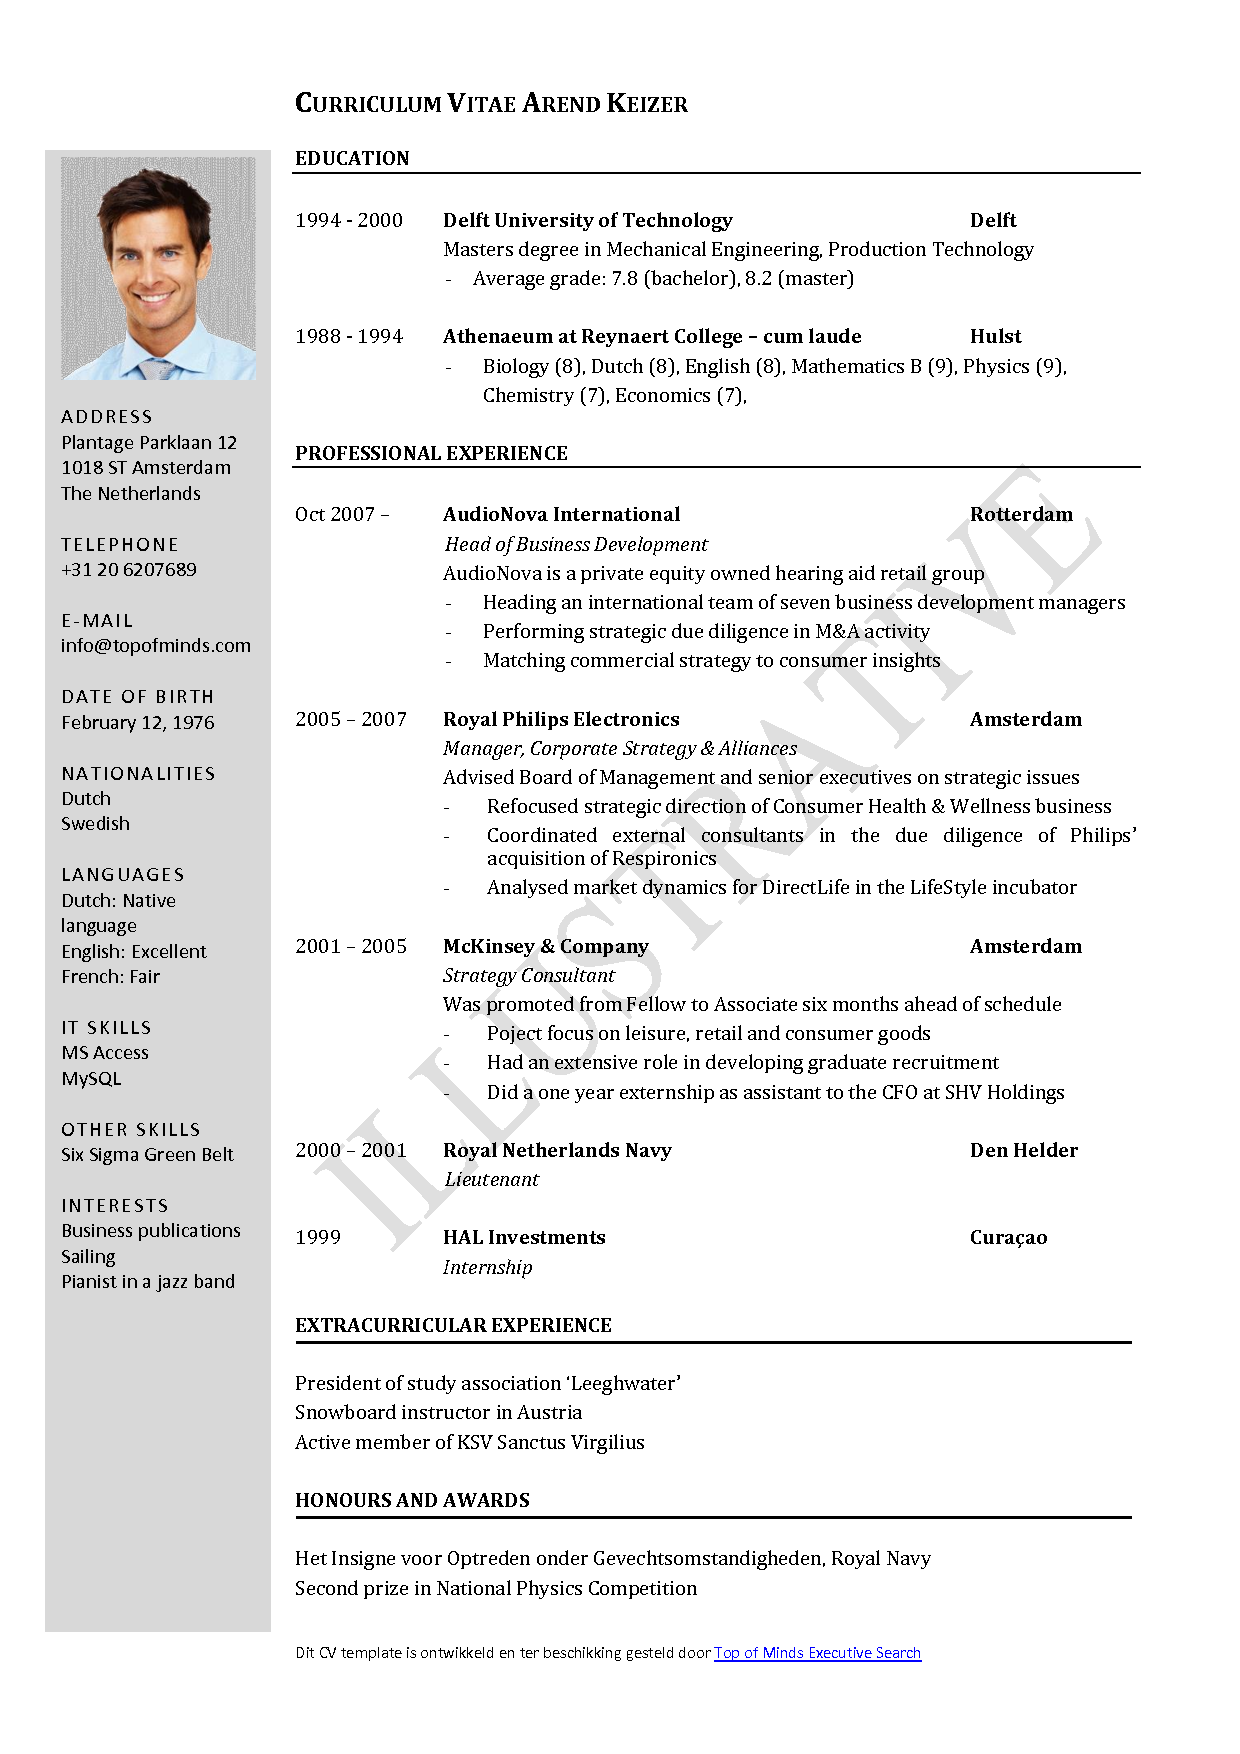 Free Curriculum Vitae Template Word | Download CV Template  Resume Format Word